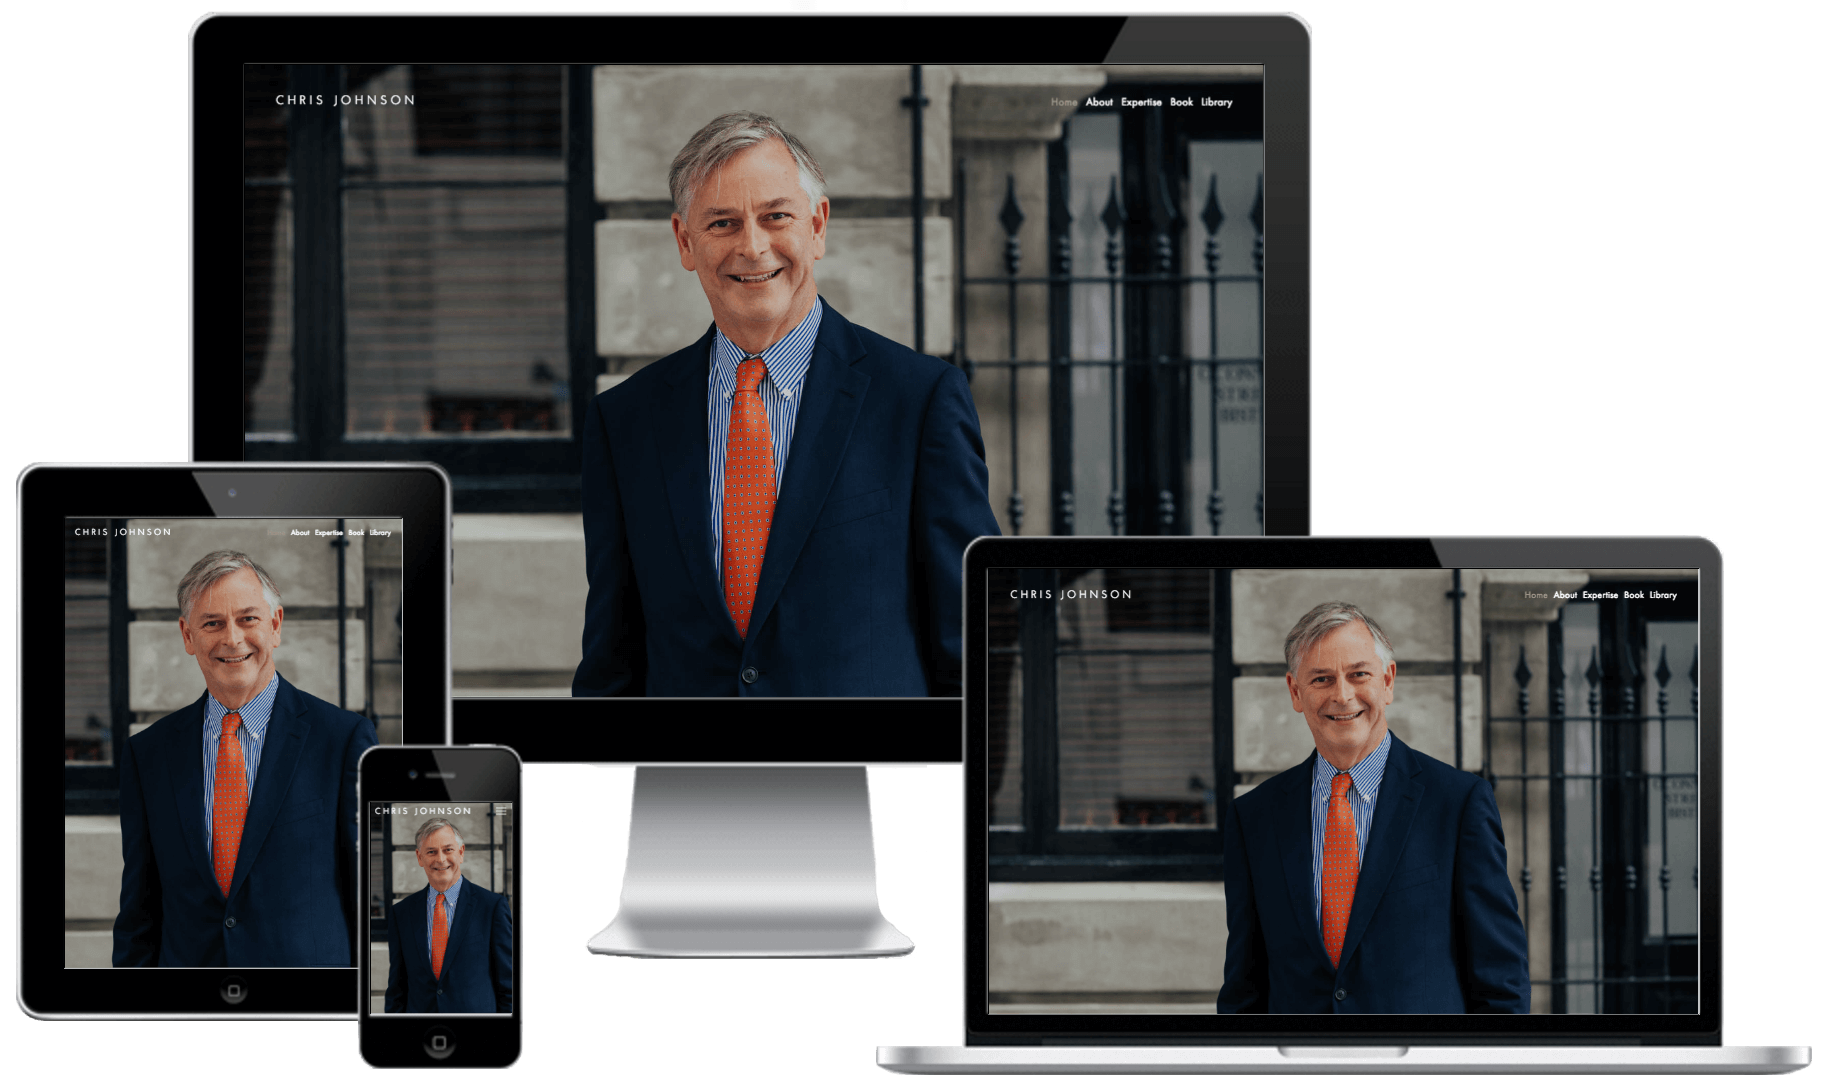 Branded Website - The final product we created was a fully-responsive business website, which showcases Chris' expertise in a way that immediately communicates his unique brand and value proposition to any visitor. Check it out and get to know Chris Johnson here.